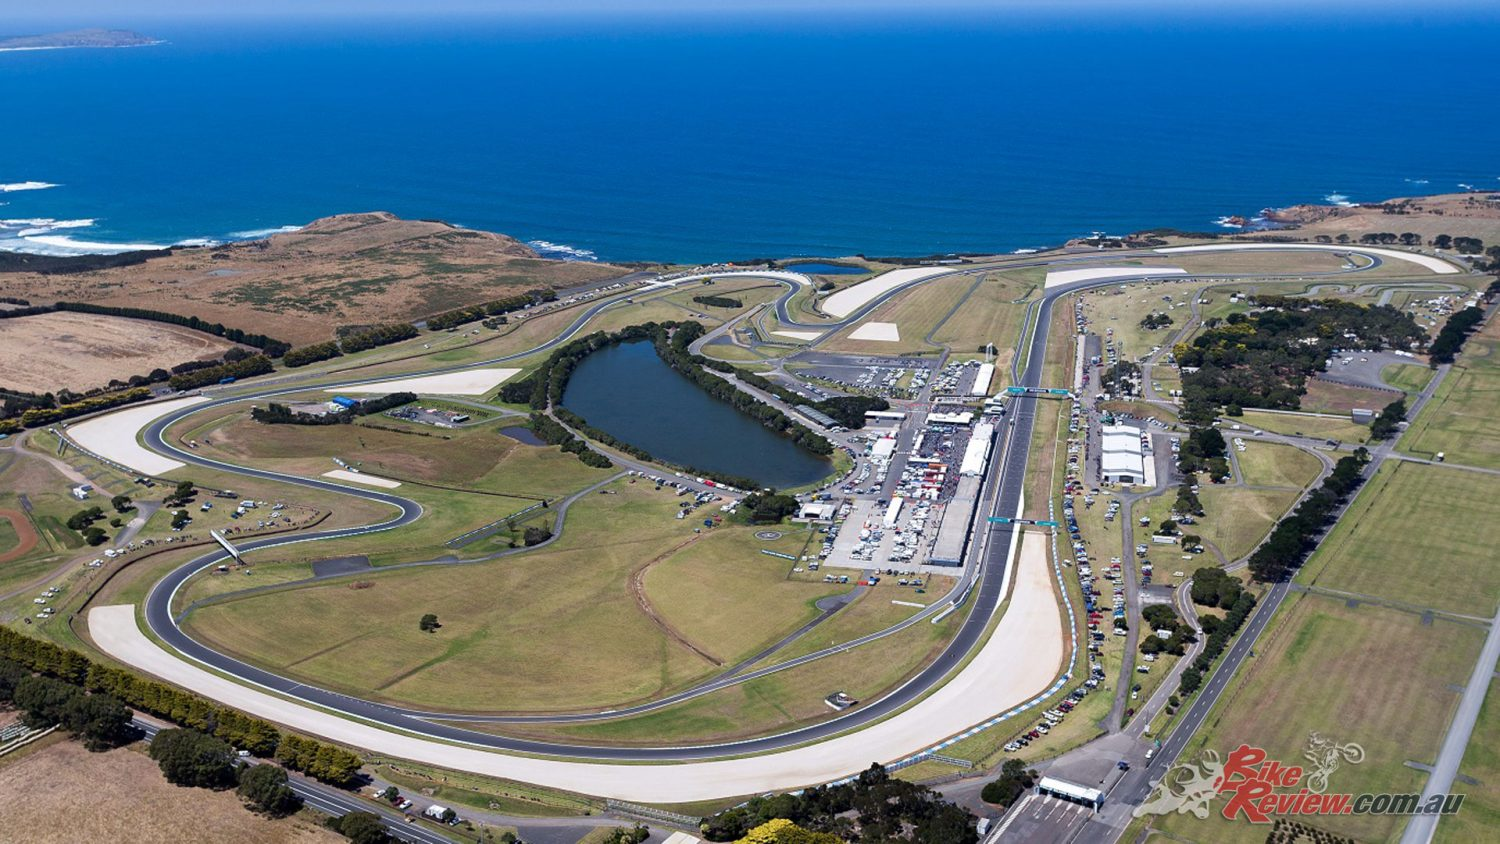 WorldSBK 2019 at Phillip Island tickets are available now